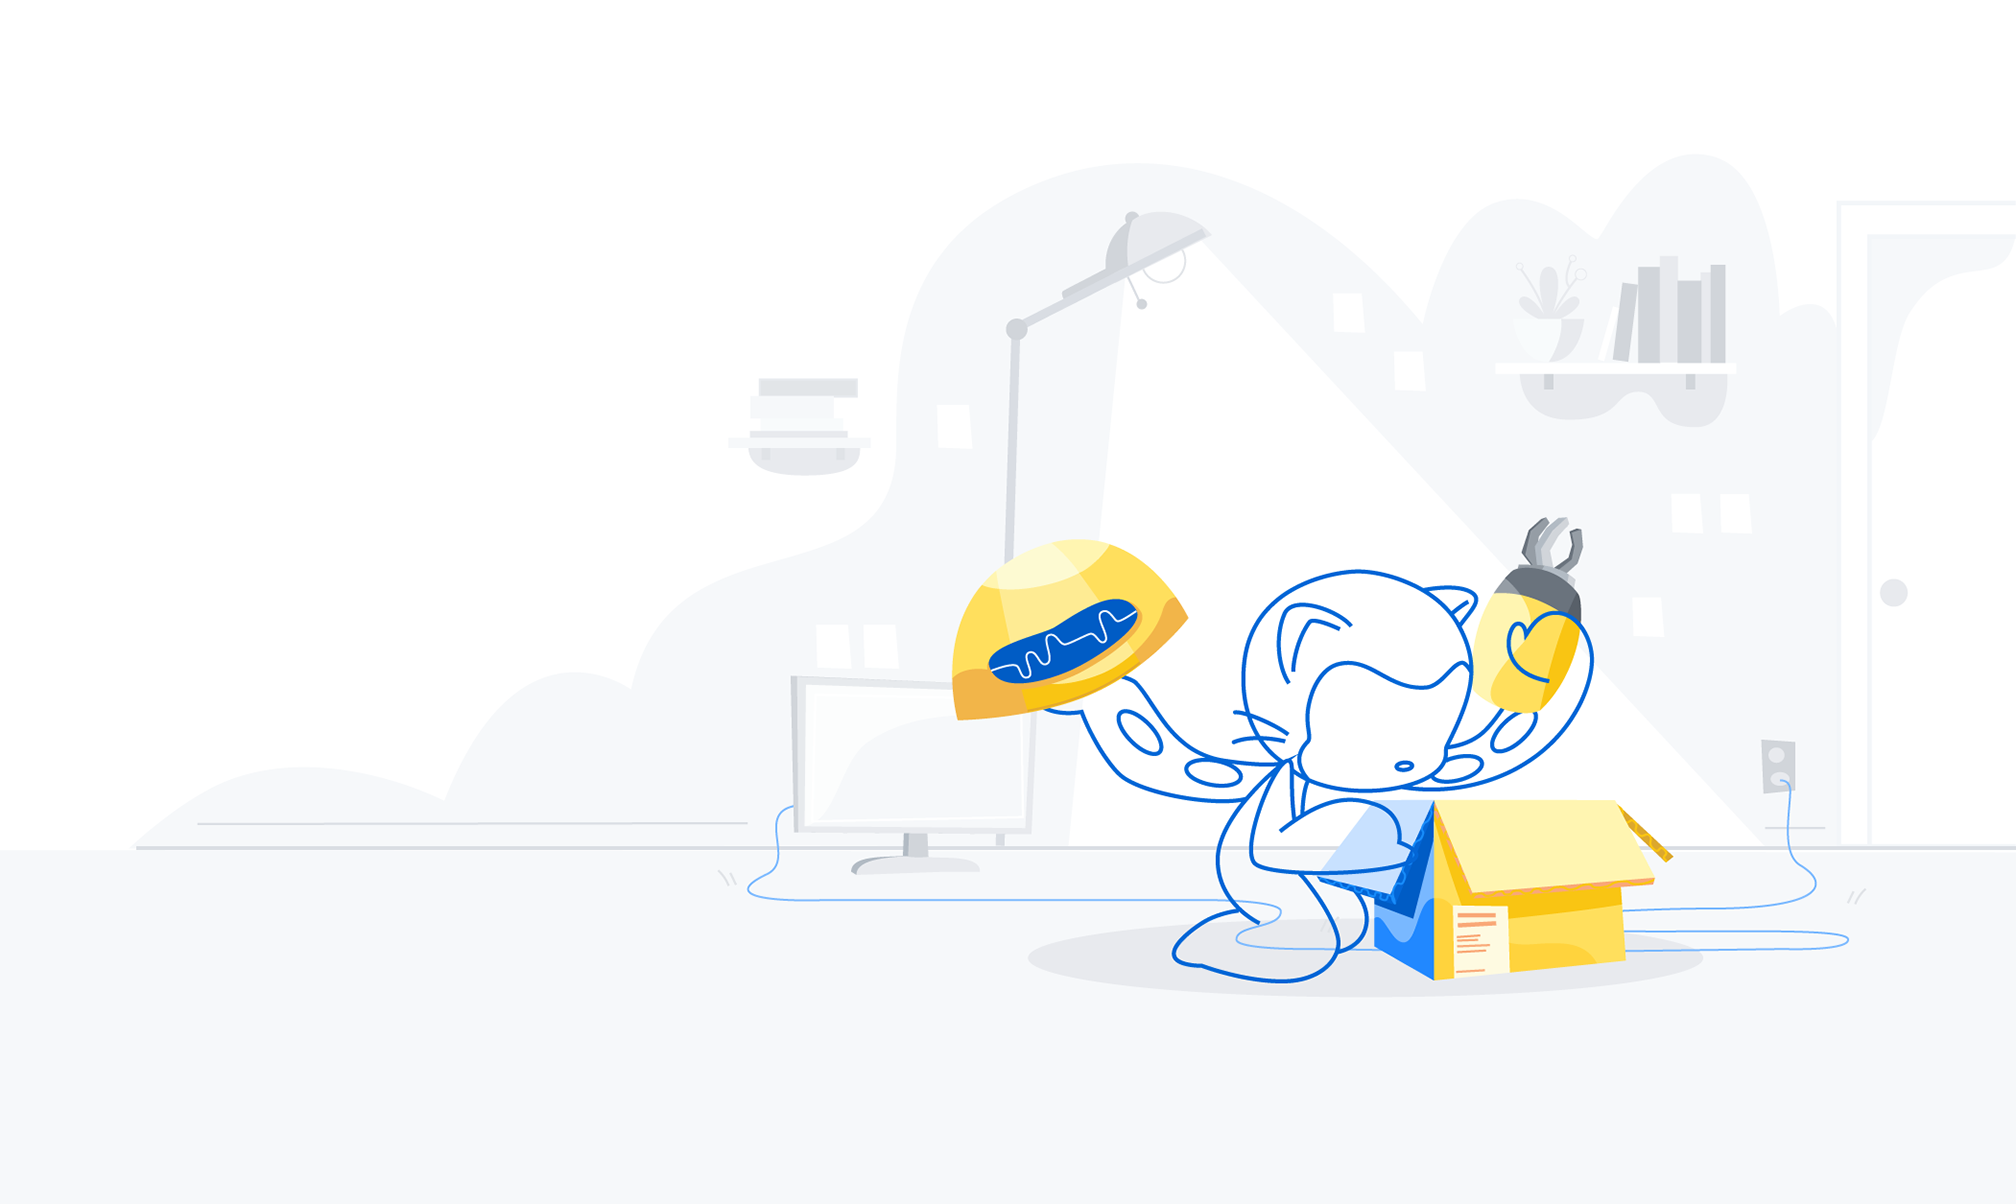 GitHub Discussions now available for private repositories - The GitHub Blog